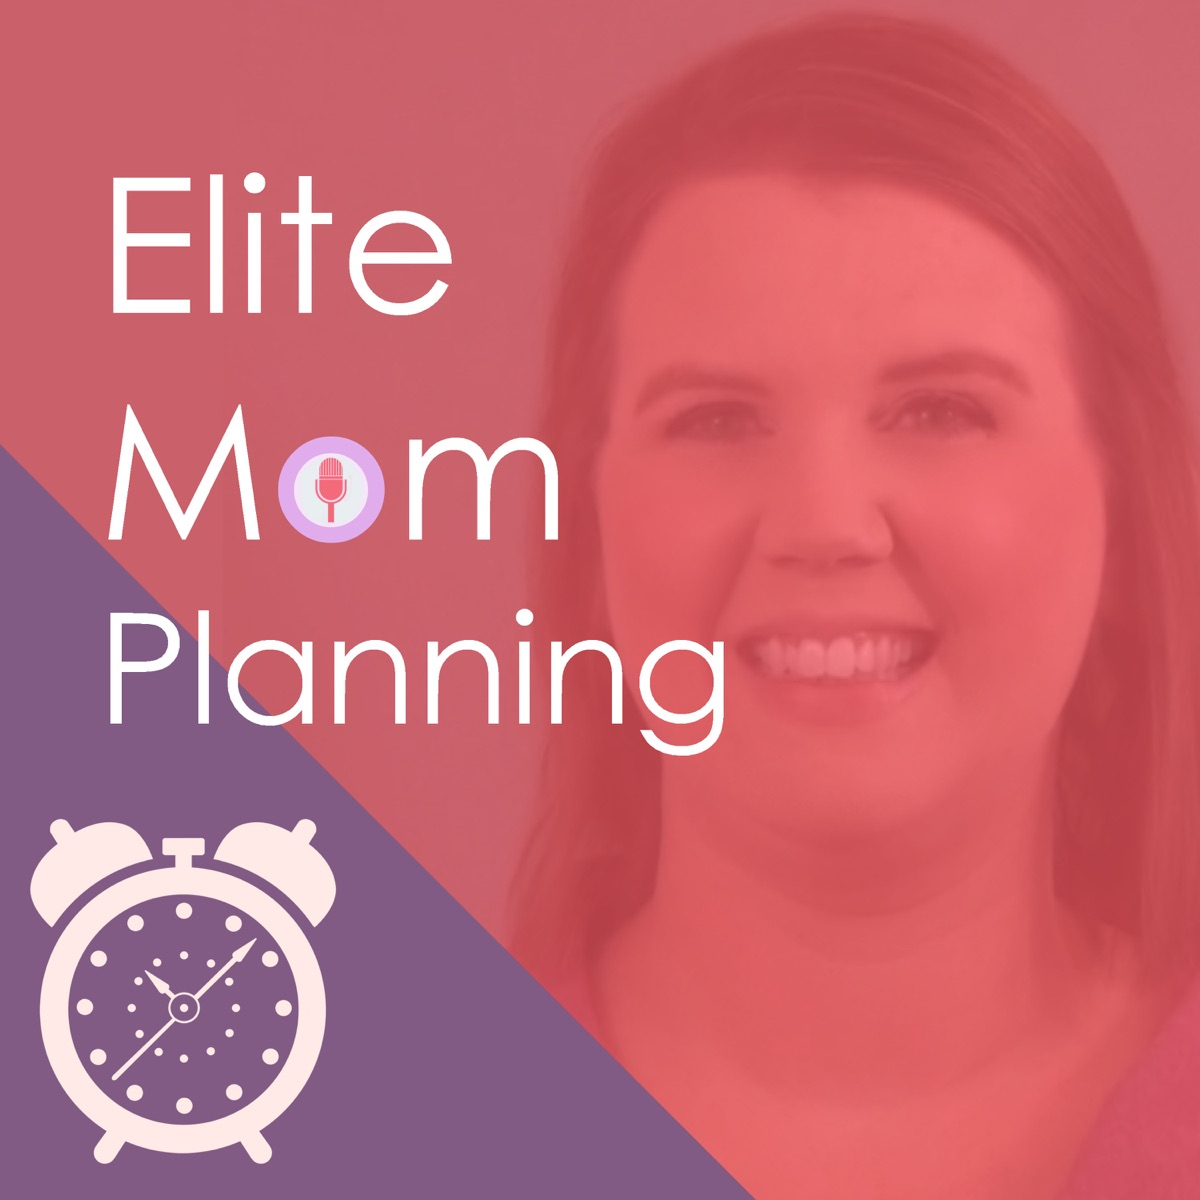 Elite Mom Planning Podcast - Time Management & Productive Routines